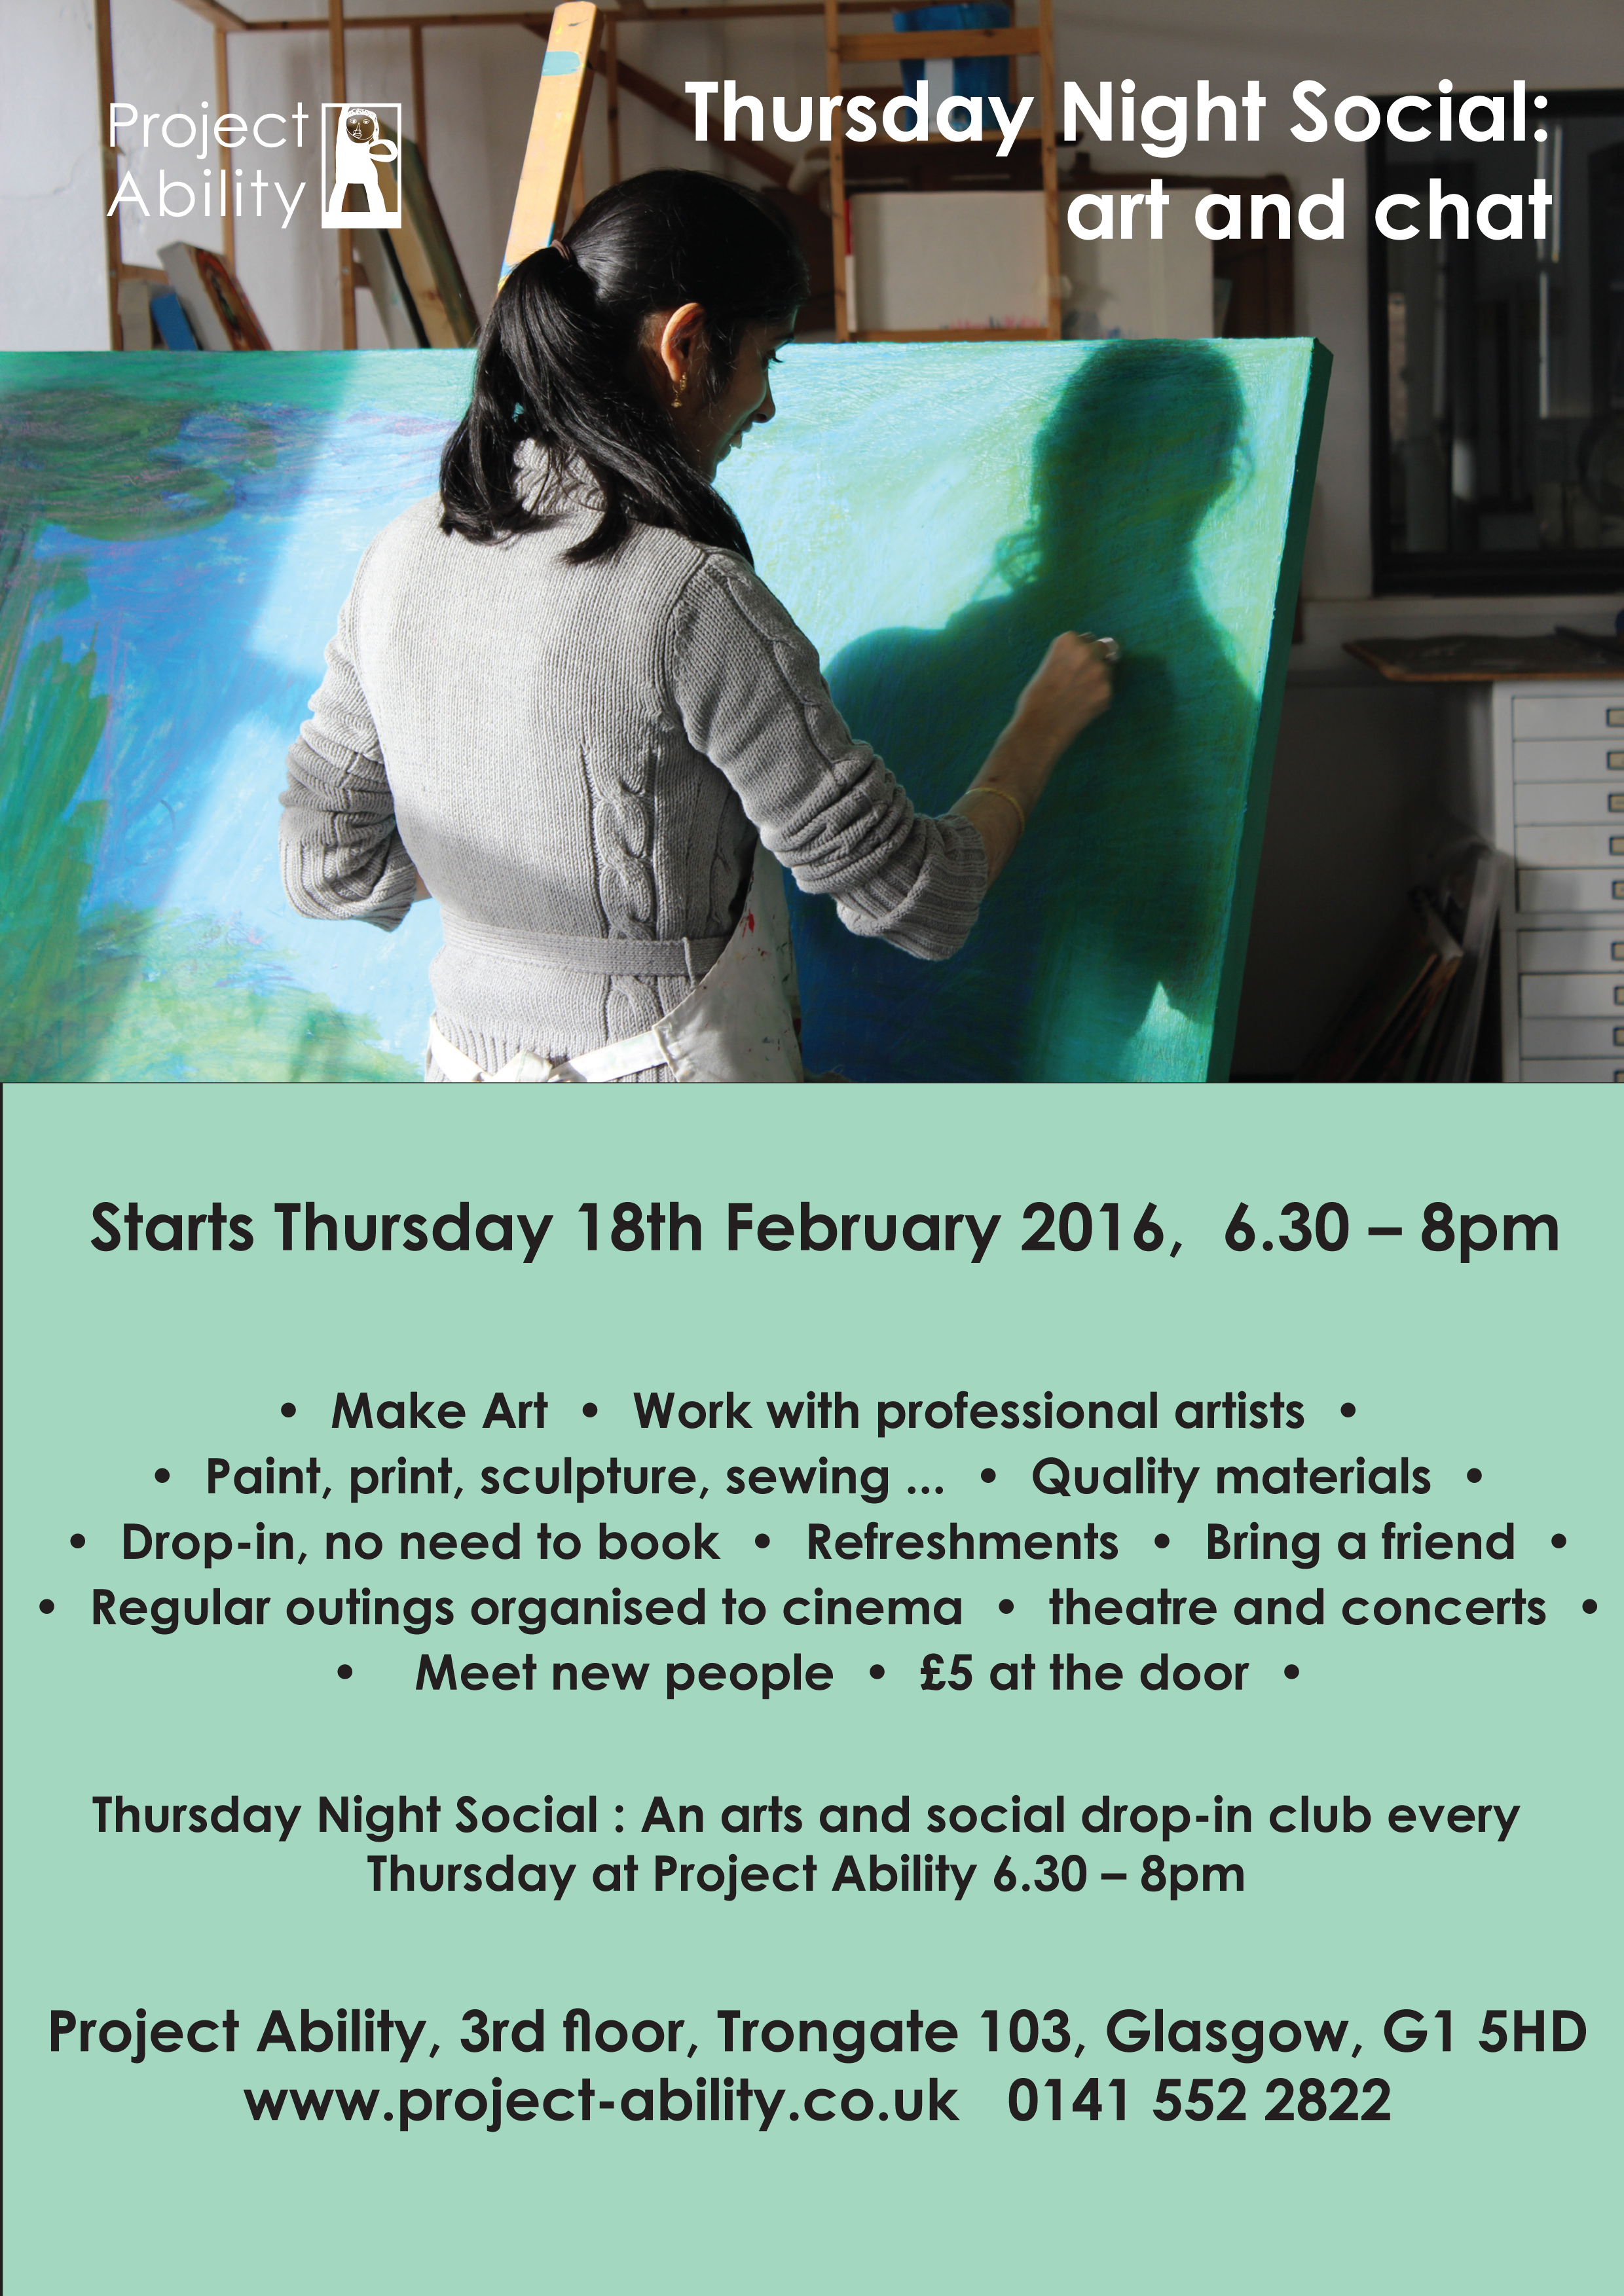 Pop by to the Thursday Night Social